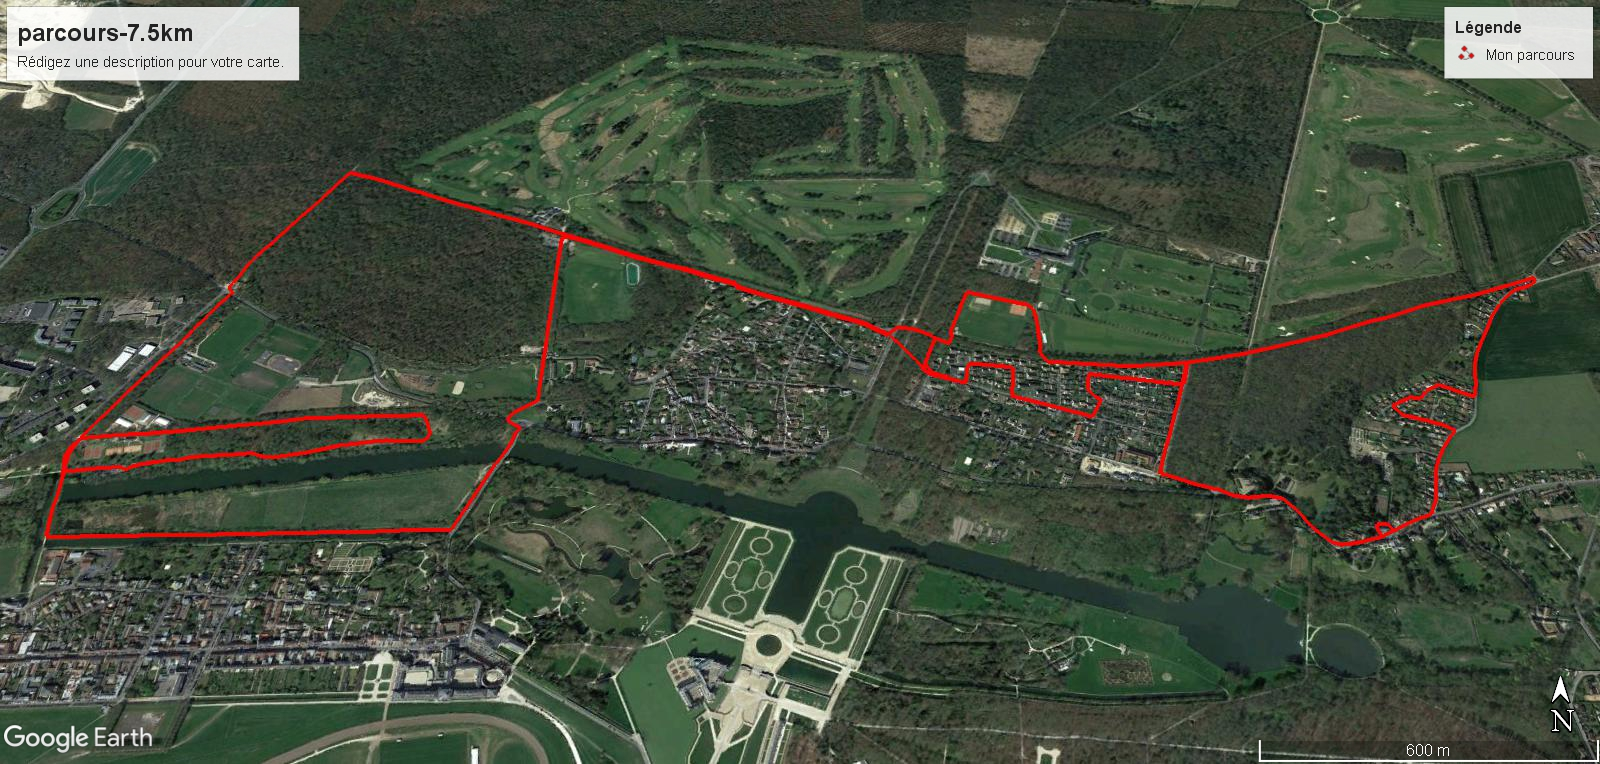 parcours-7.5km-canal-vineuil